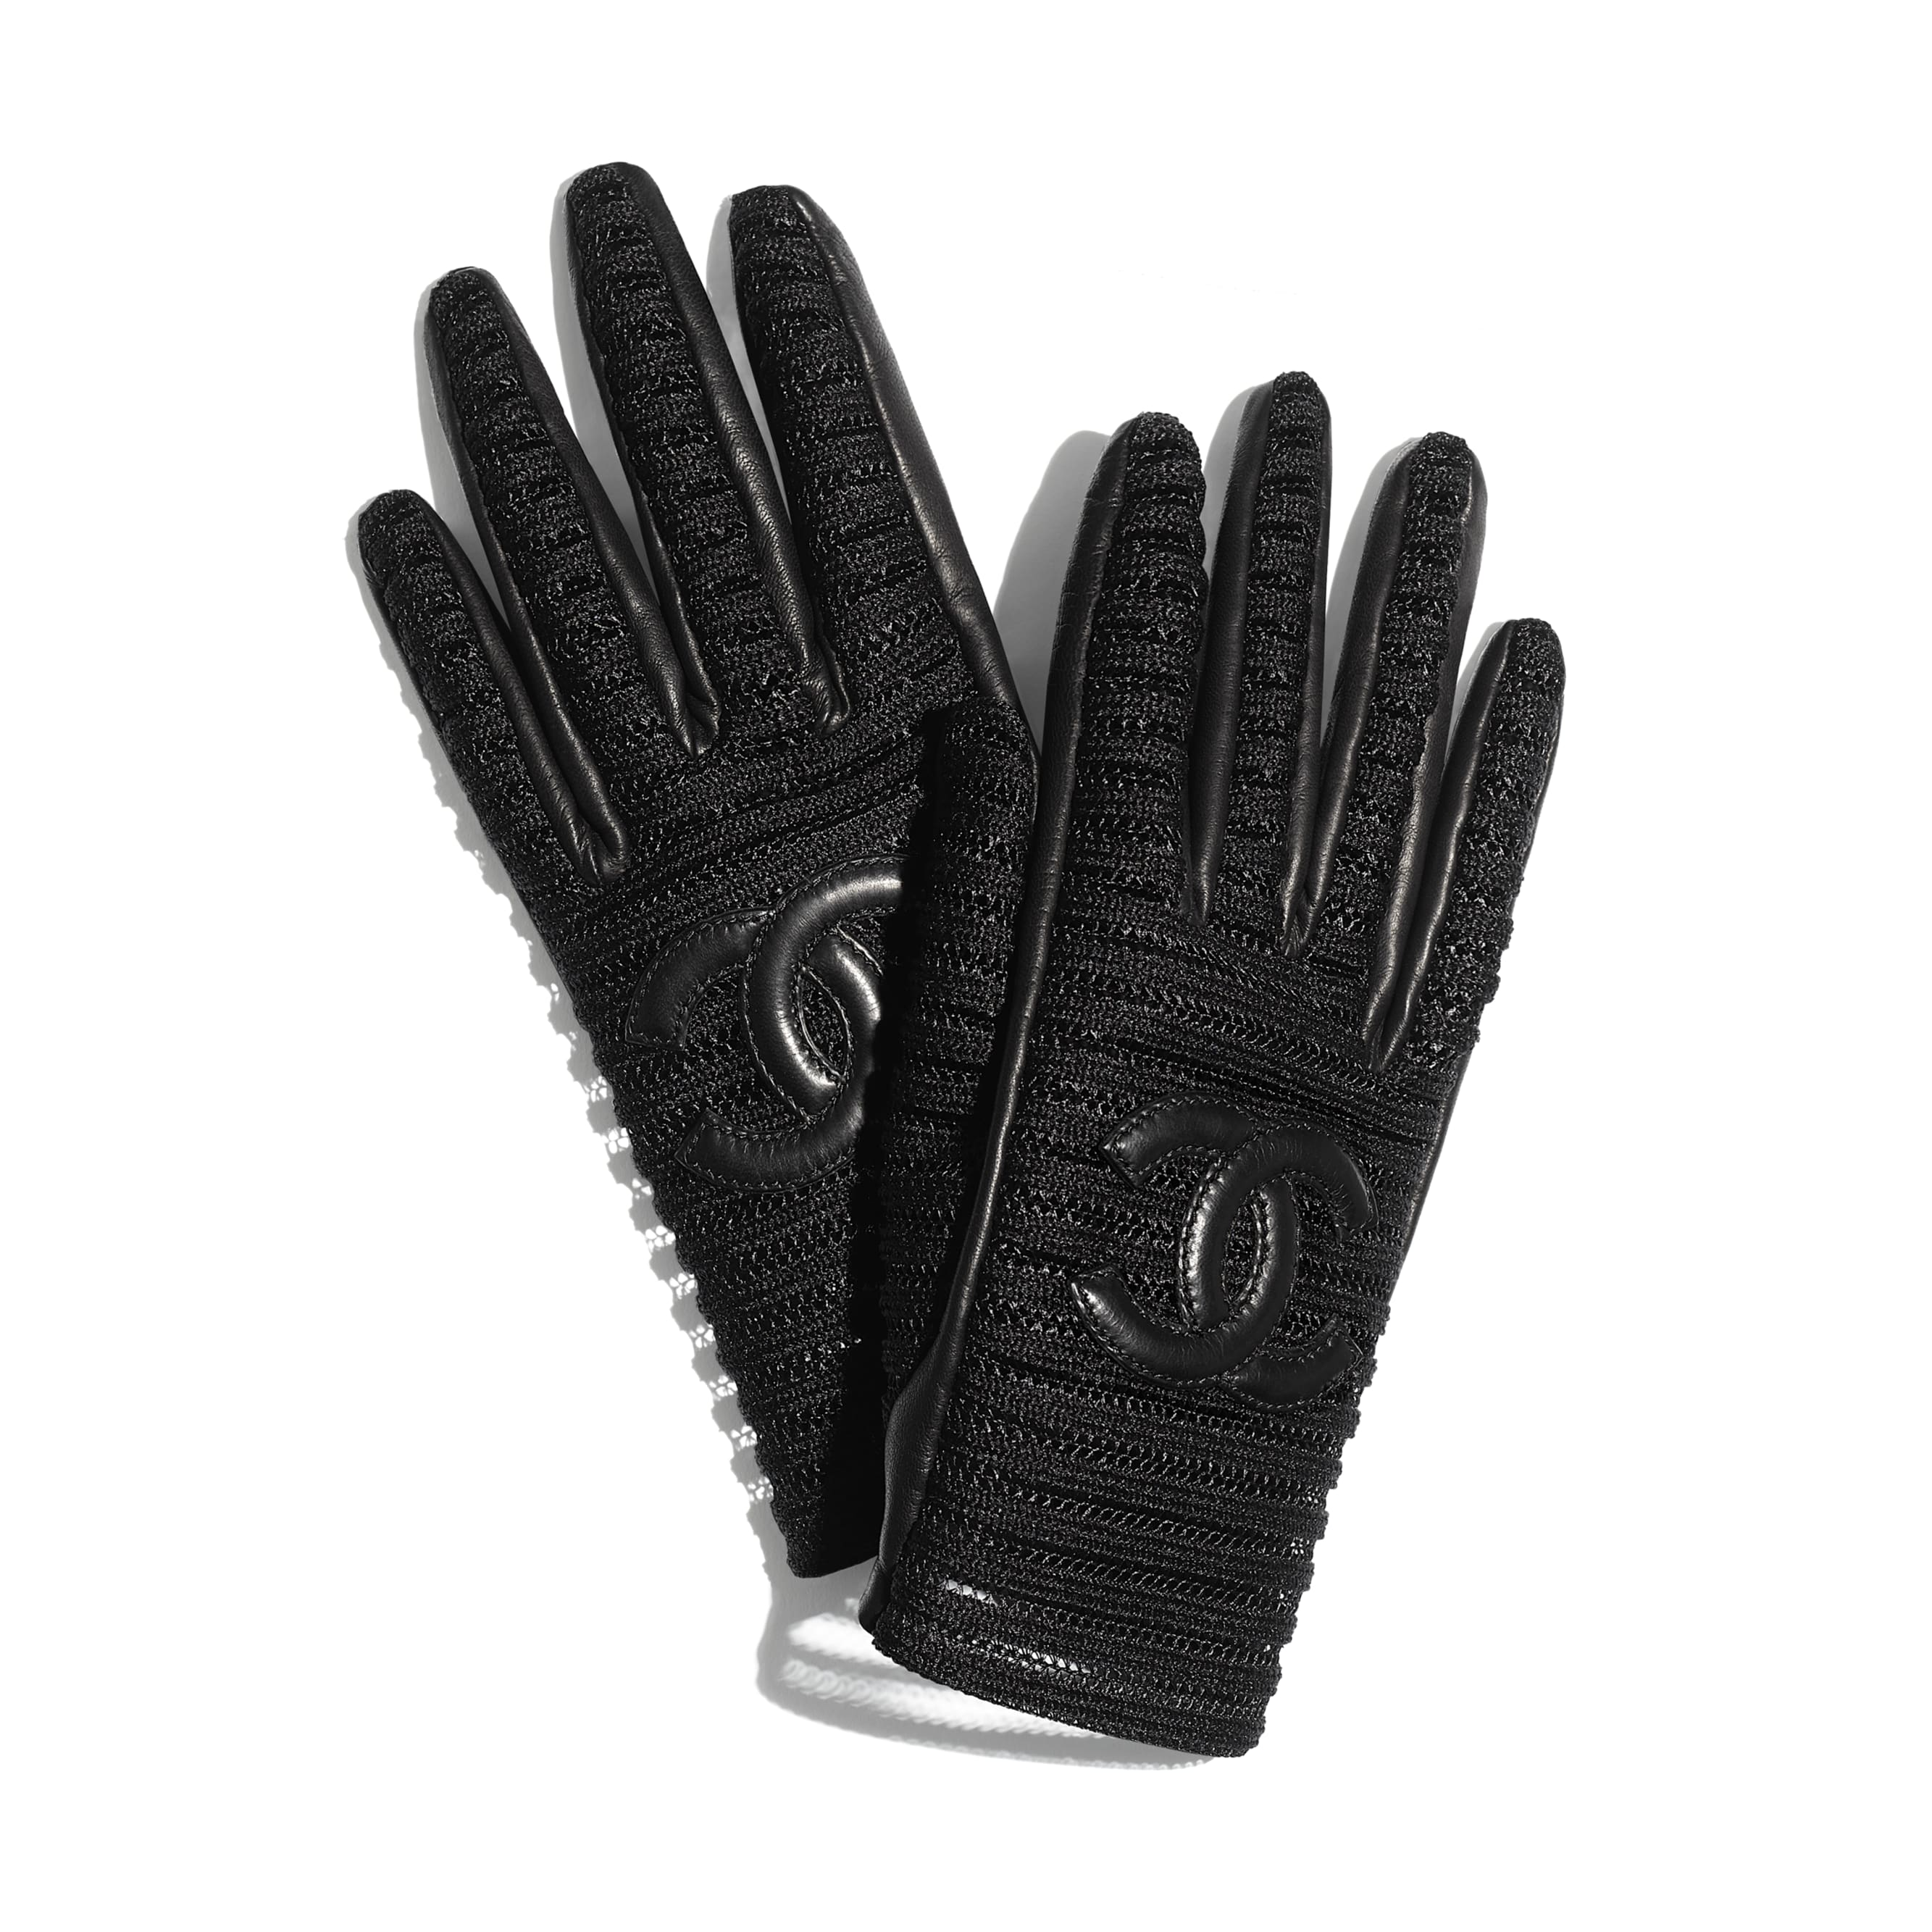 Gloves - Black - Lambskin & Synthetic Fibers - CHANEL - Default view - see standard sized version